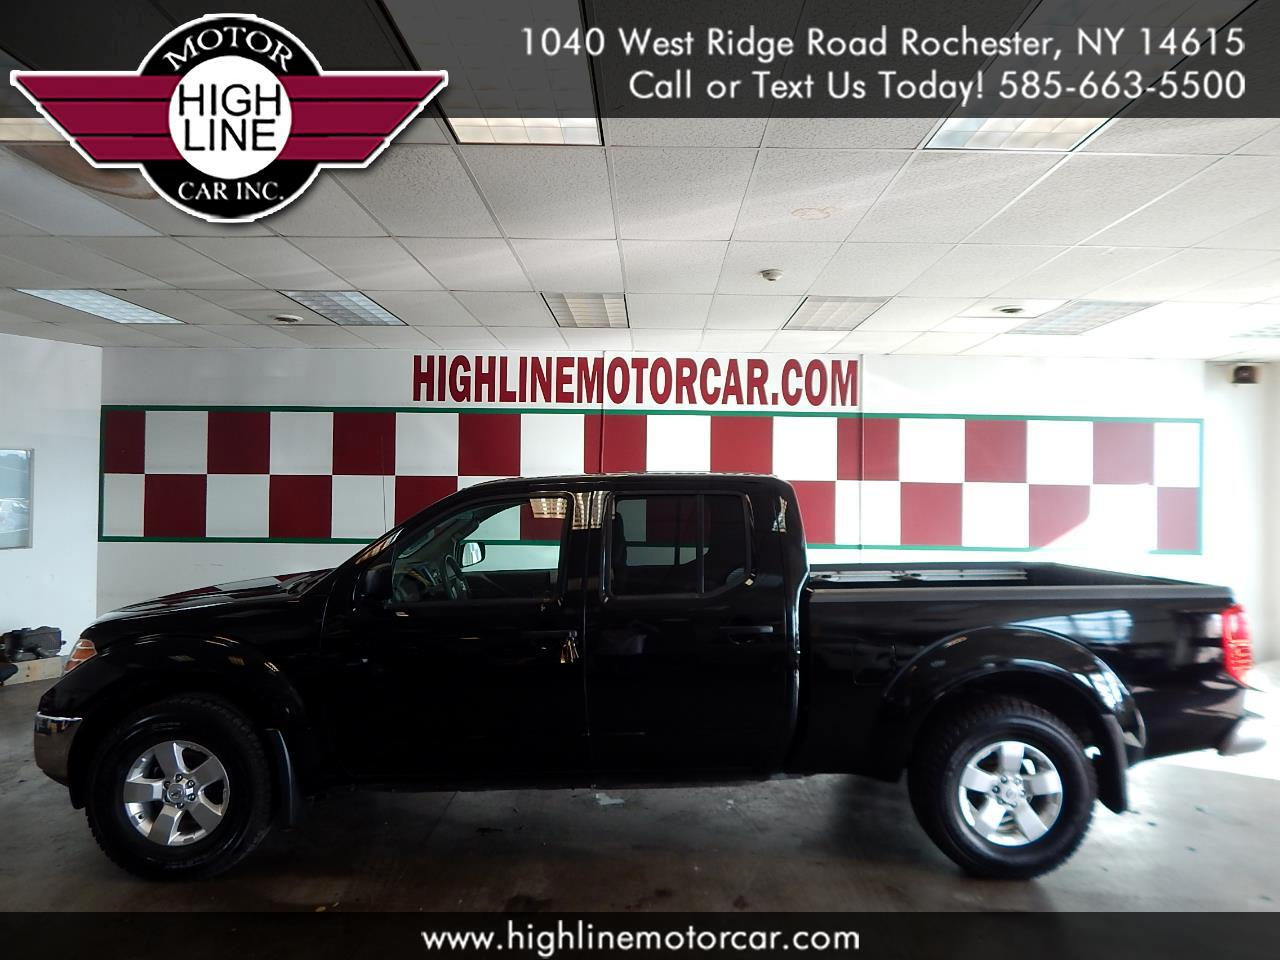 2012 Nissan Frontier 4WD Crew Cab LWB Auto SV